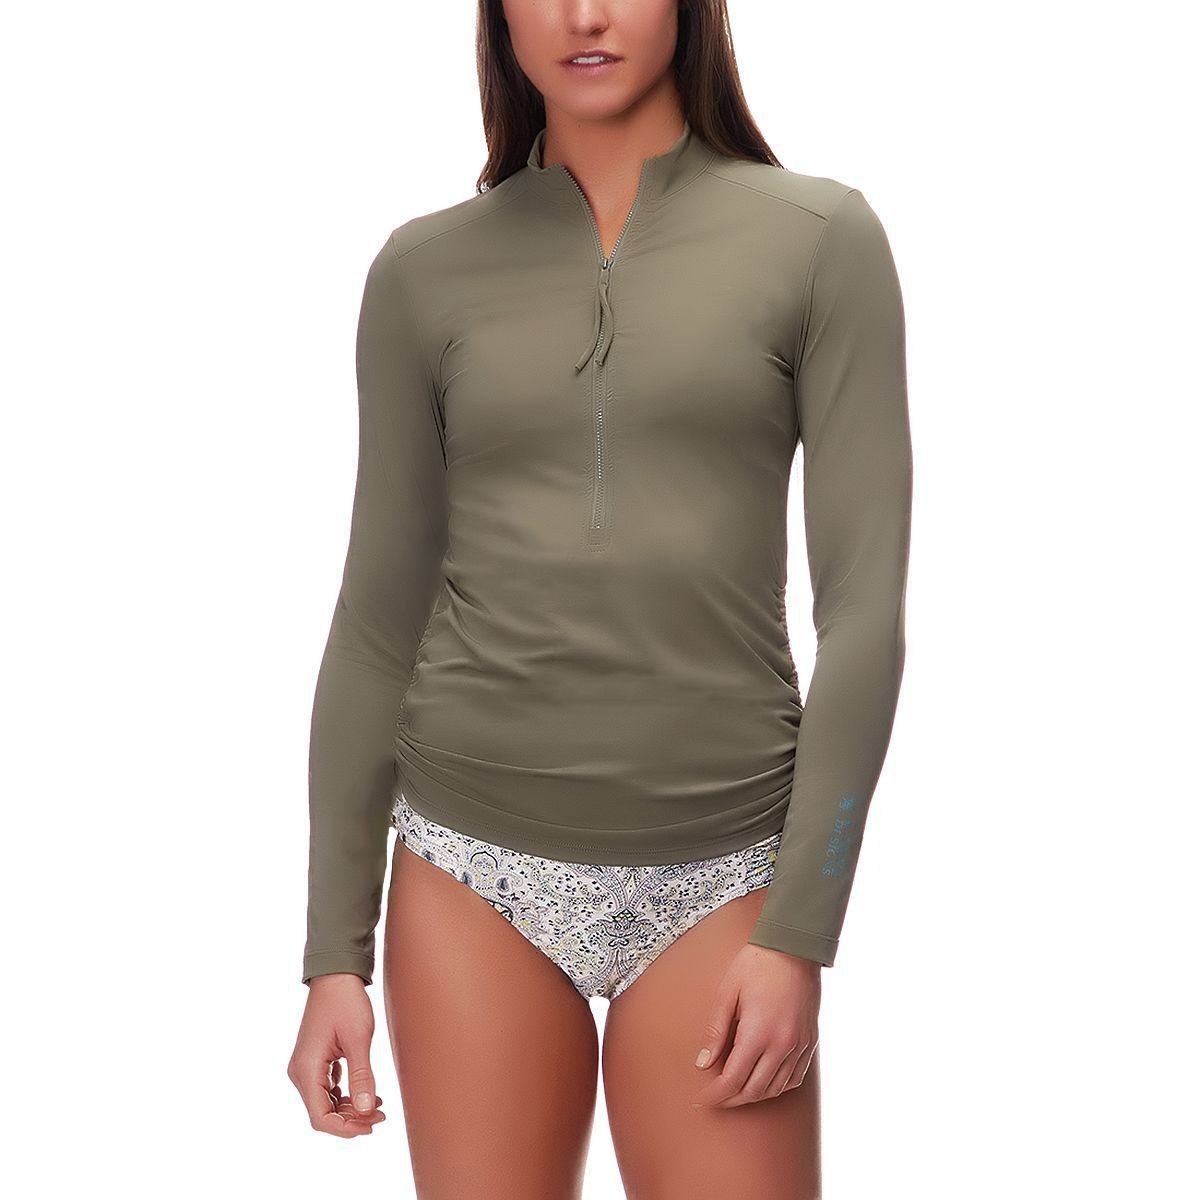 CARVE Designs Cruz Rashguard, Olive, X-Small